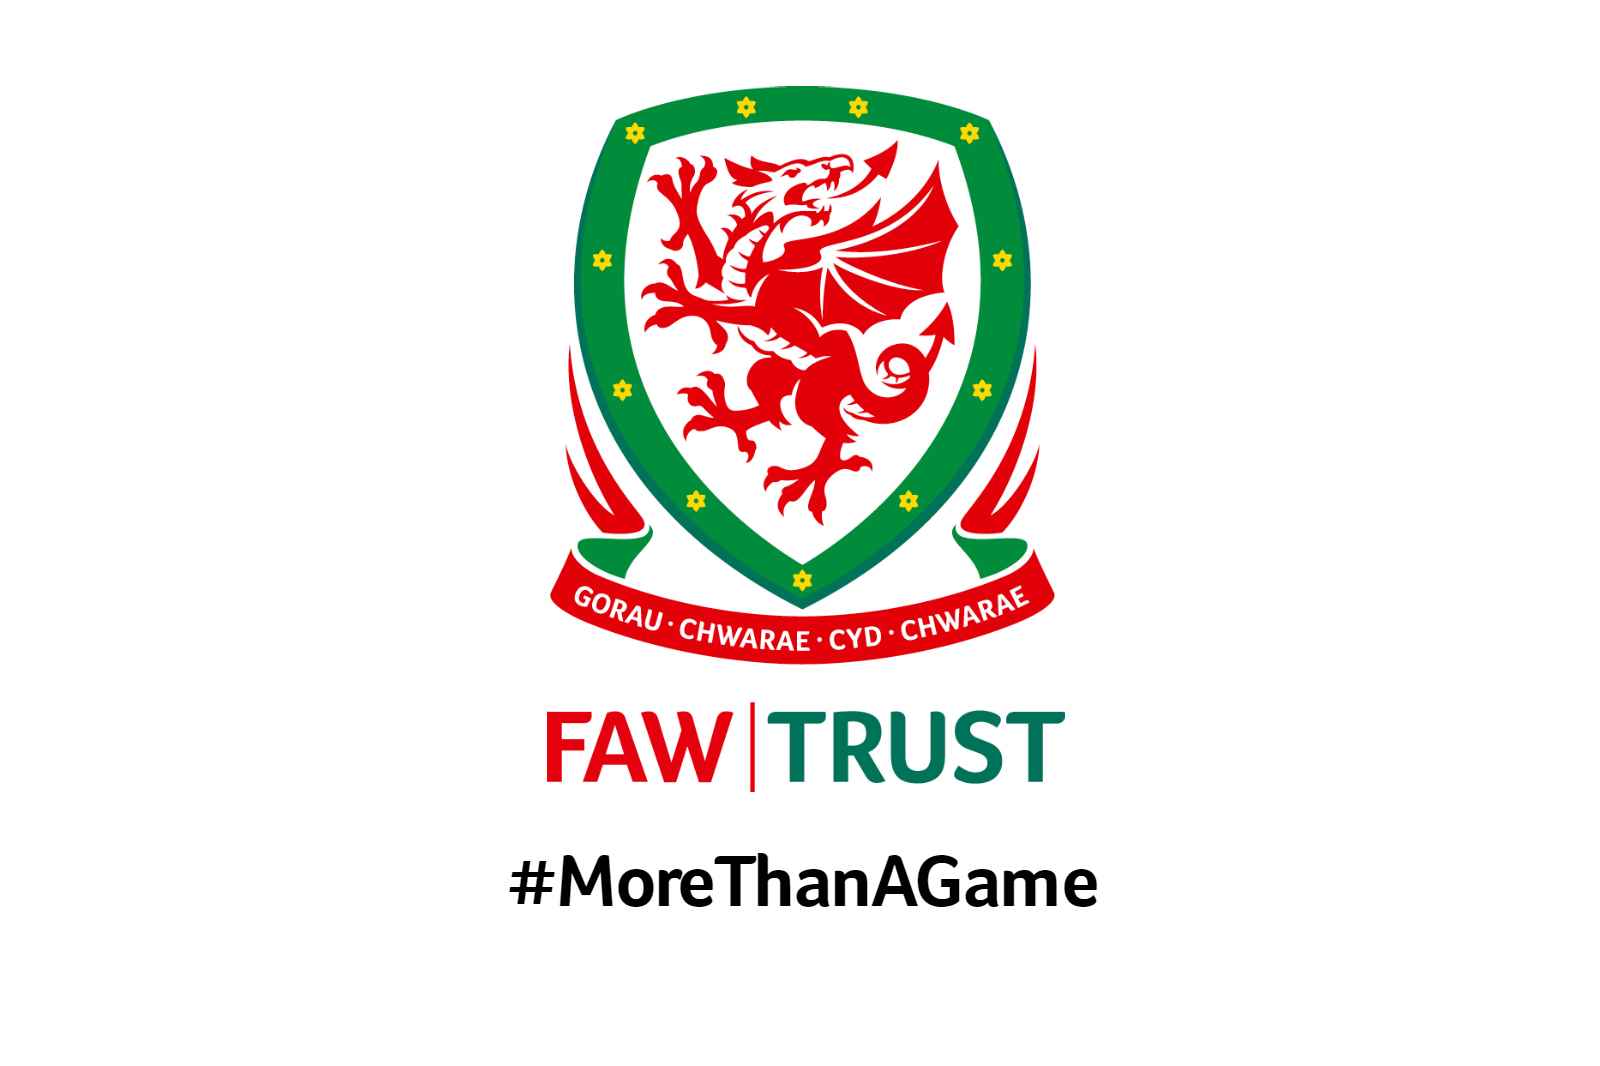 The FAW Trust is hiring an Age Group Girls Assistant Manager